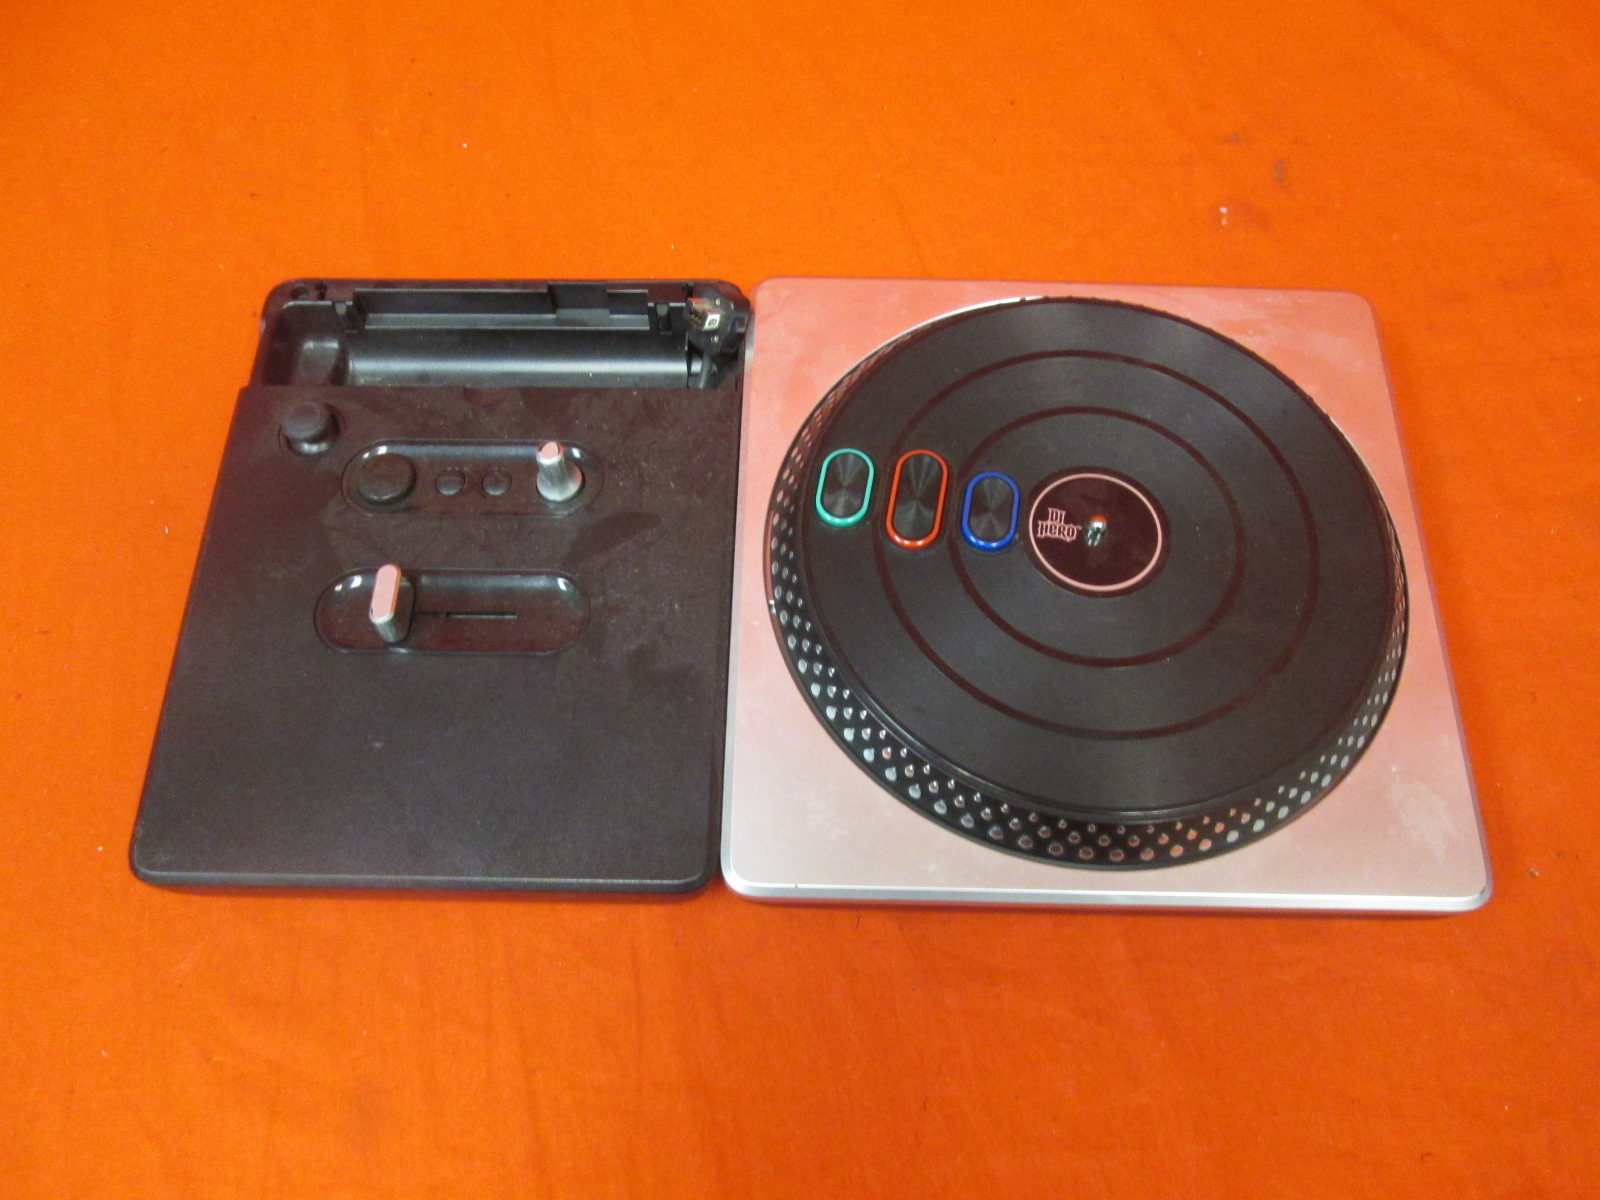 Activision DJ Hero Stand-Alone Turntable For Wii